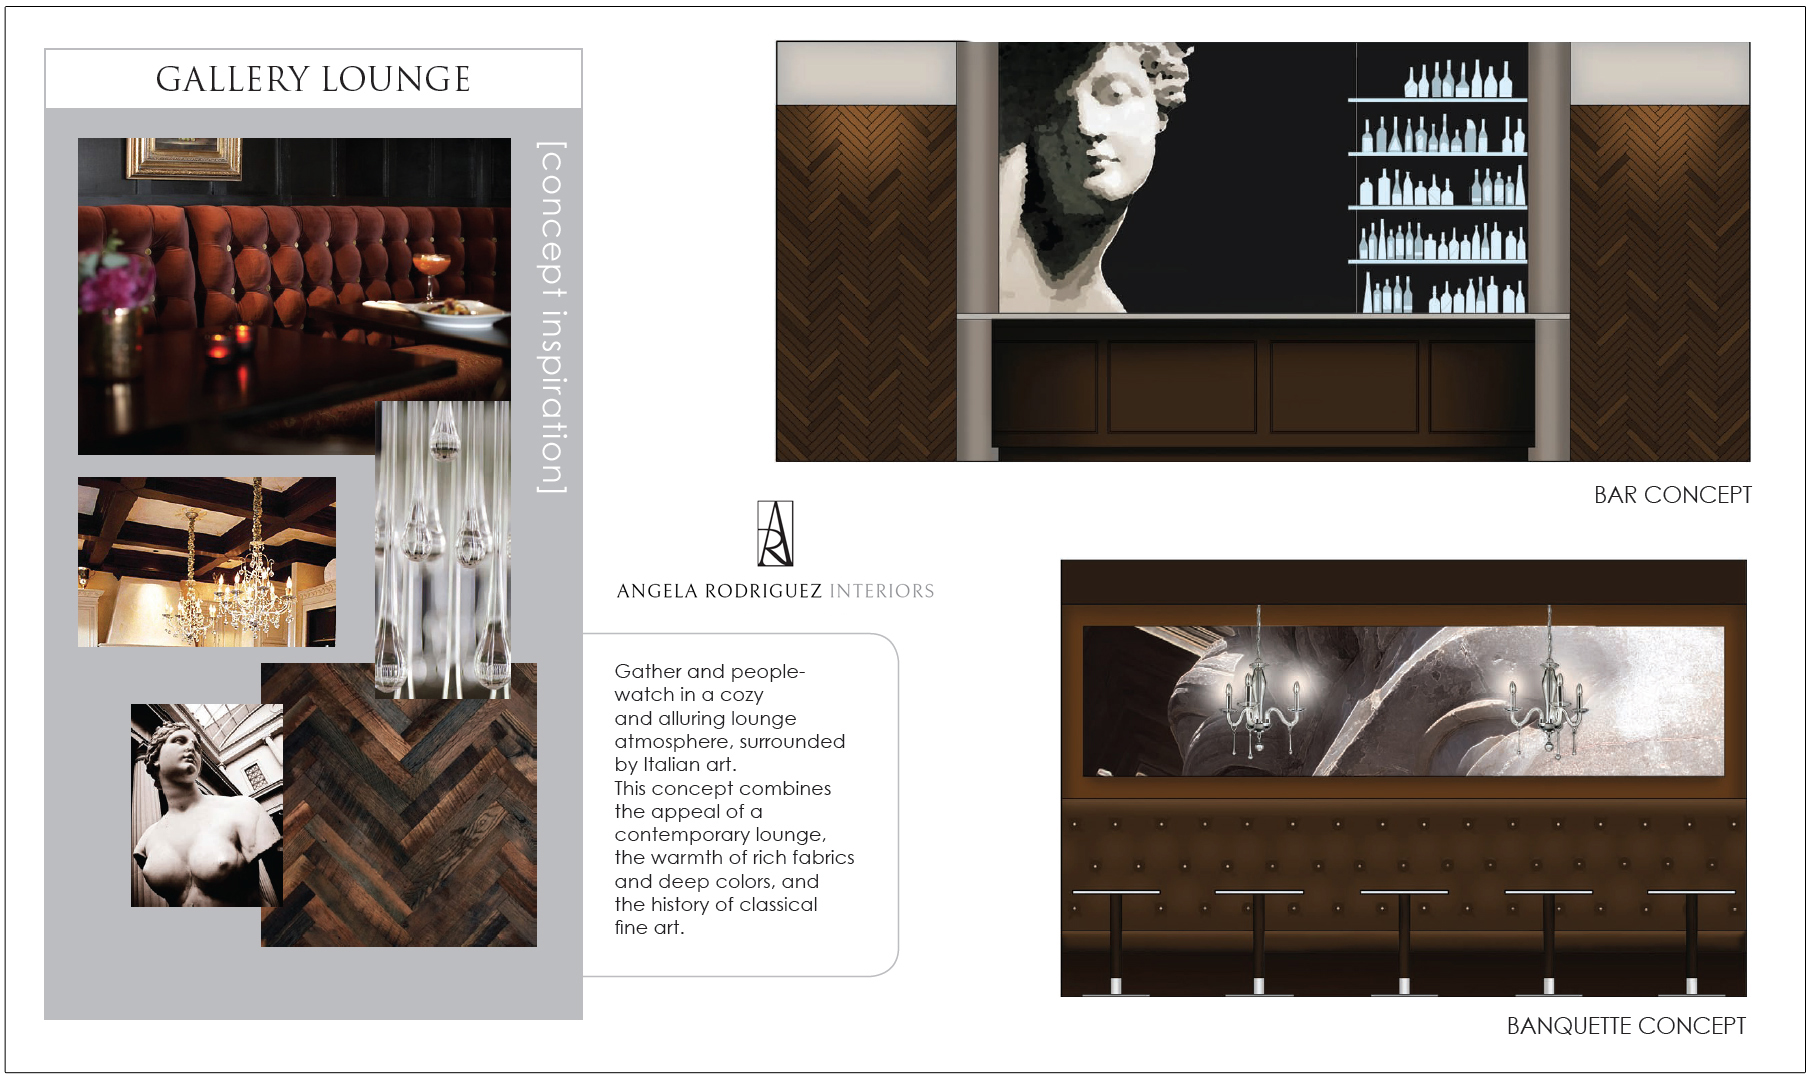 Design of a modern Italian cafe with velvet upholstered booths and art gallery concept